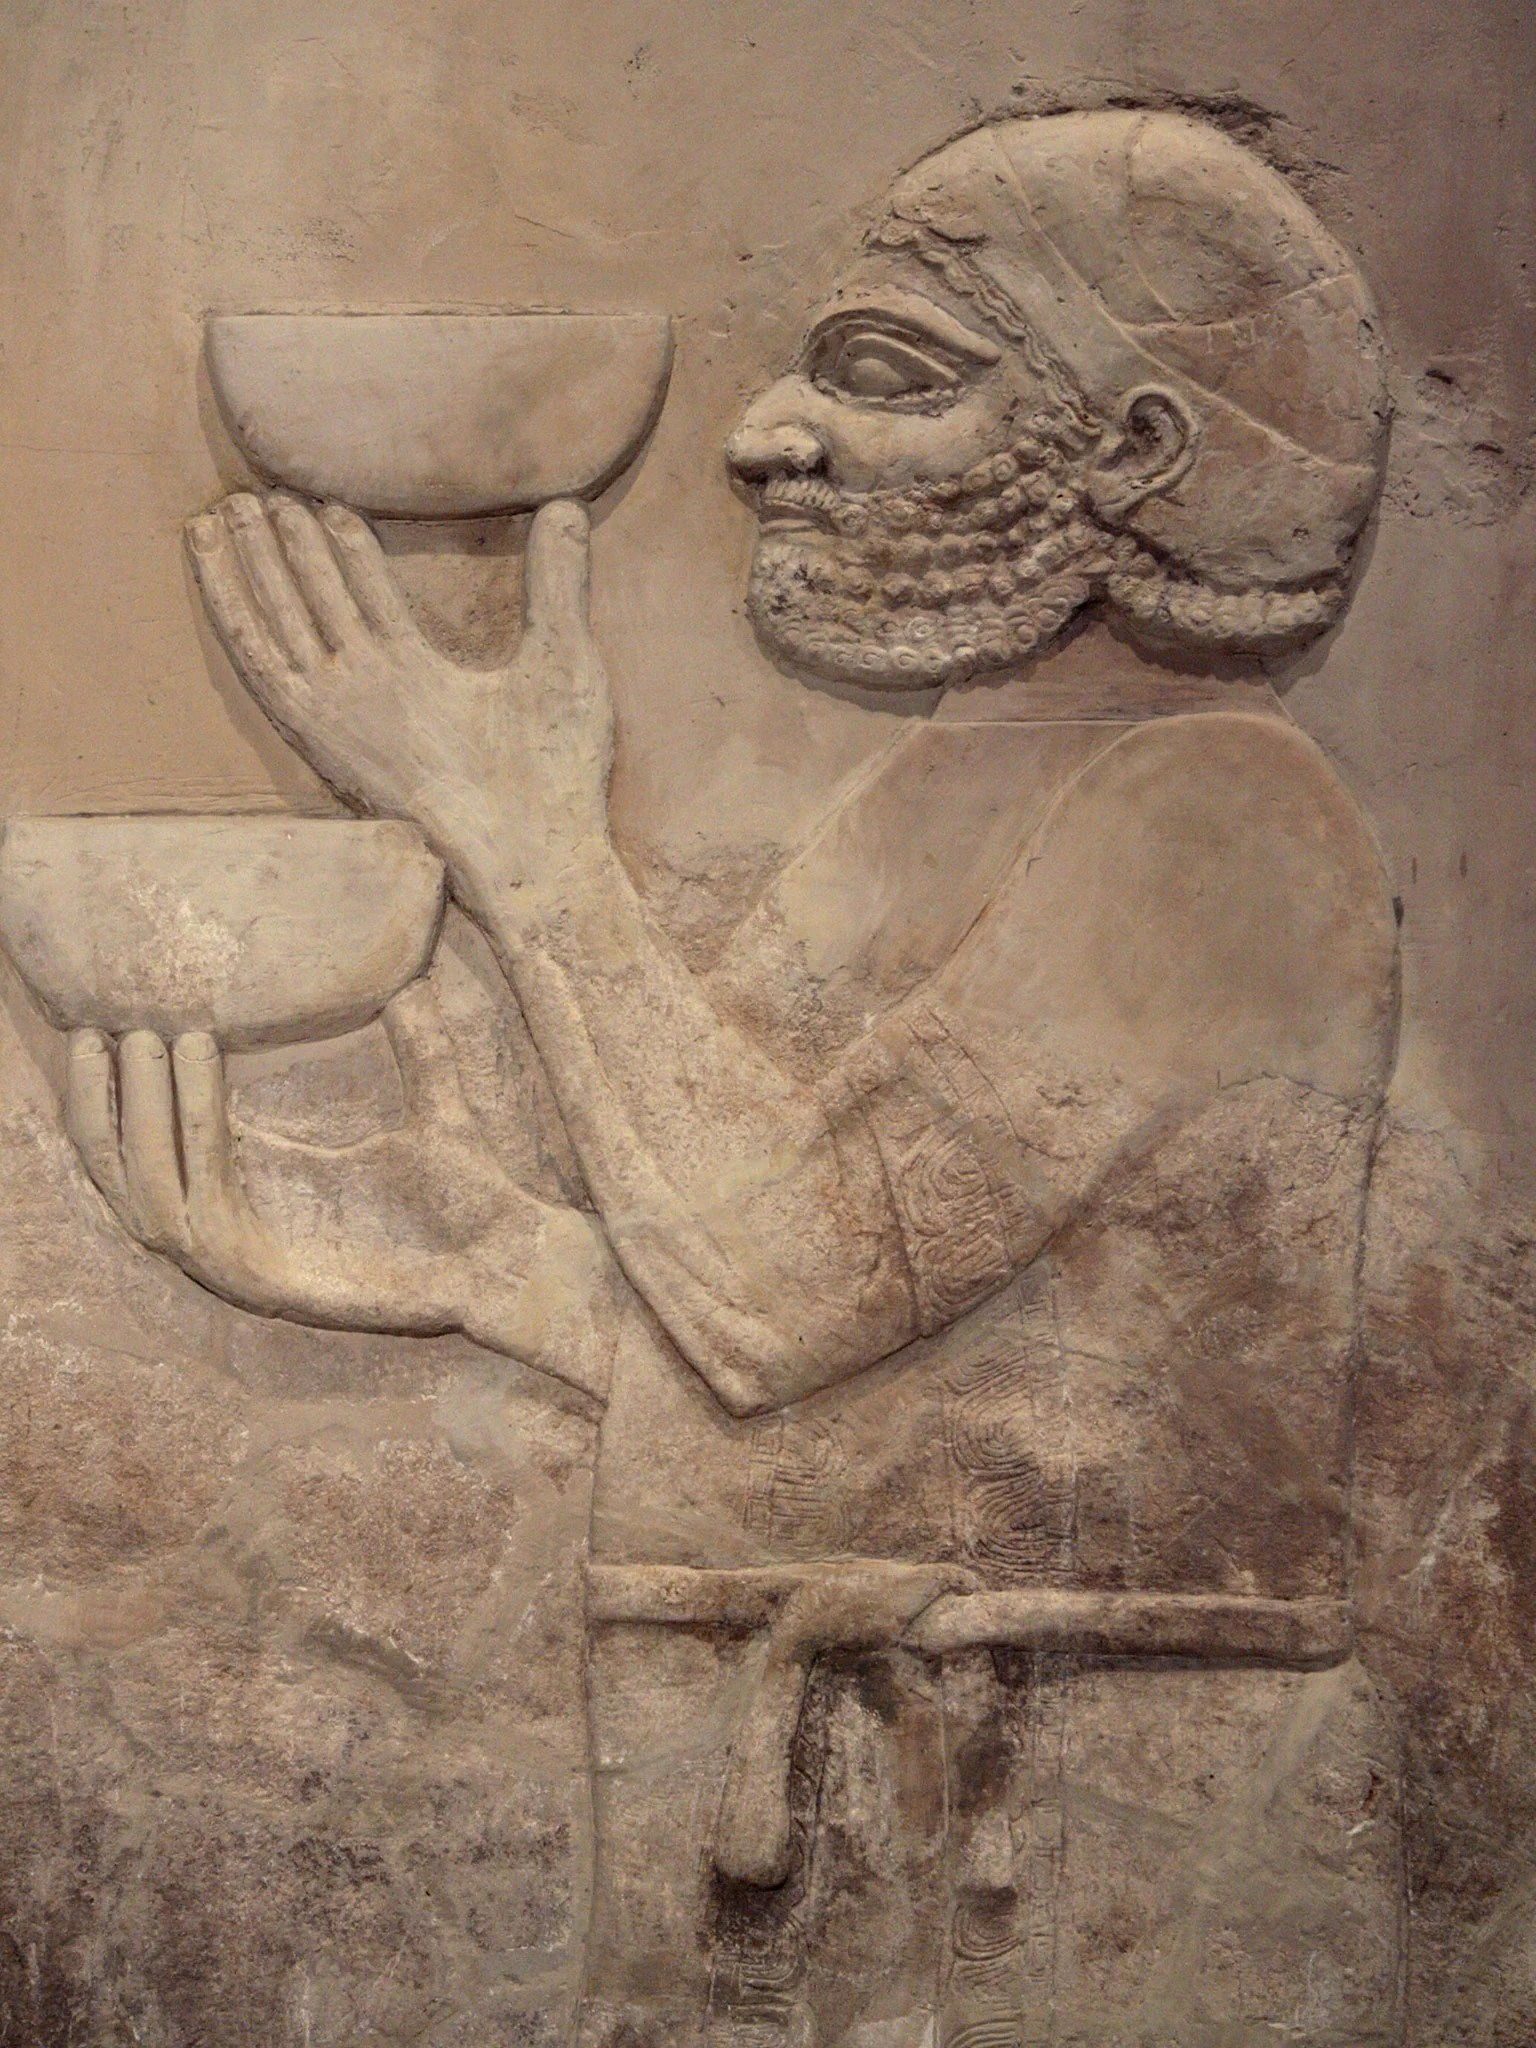 Binge drinking What the ancient world can teach us about